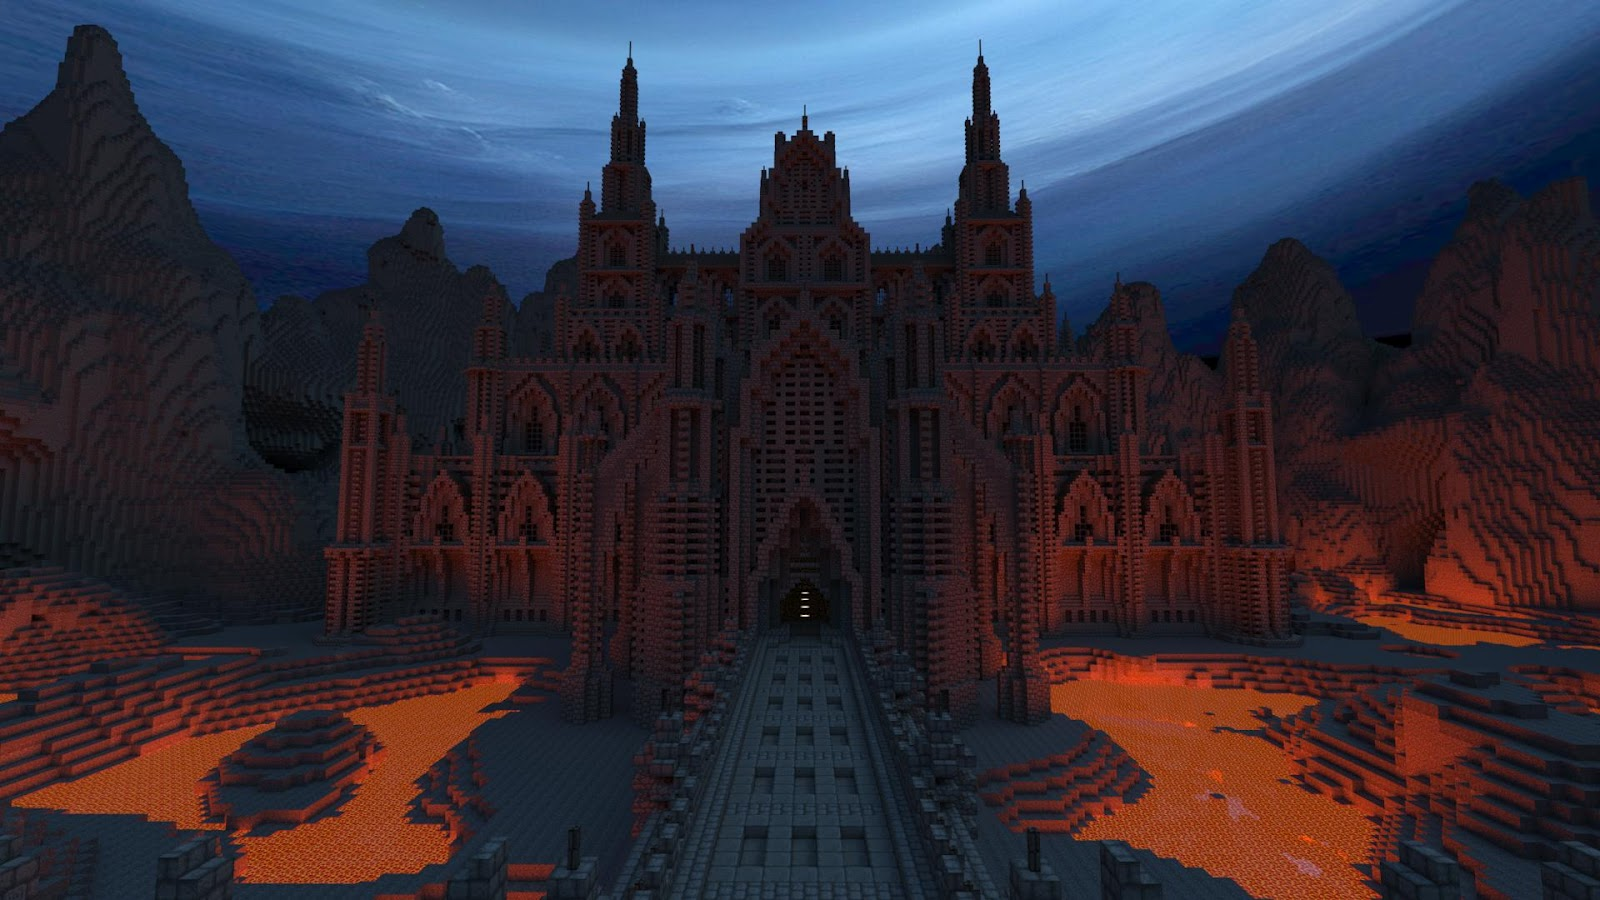 Dark Gothic Minecraft Castle